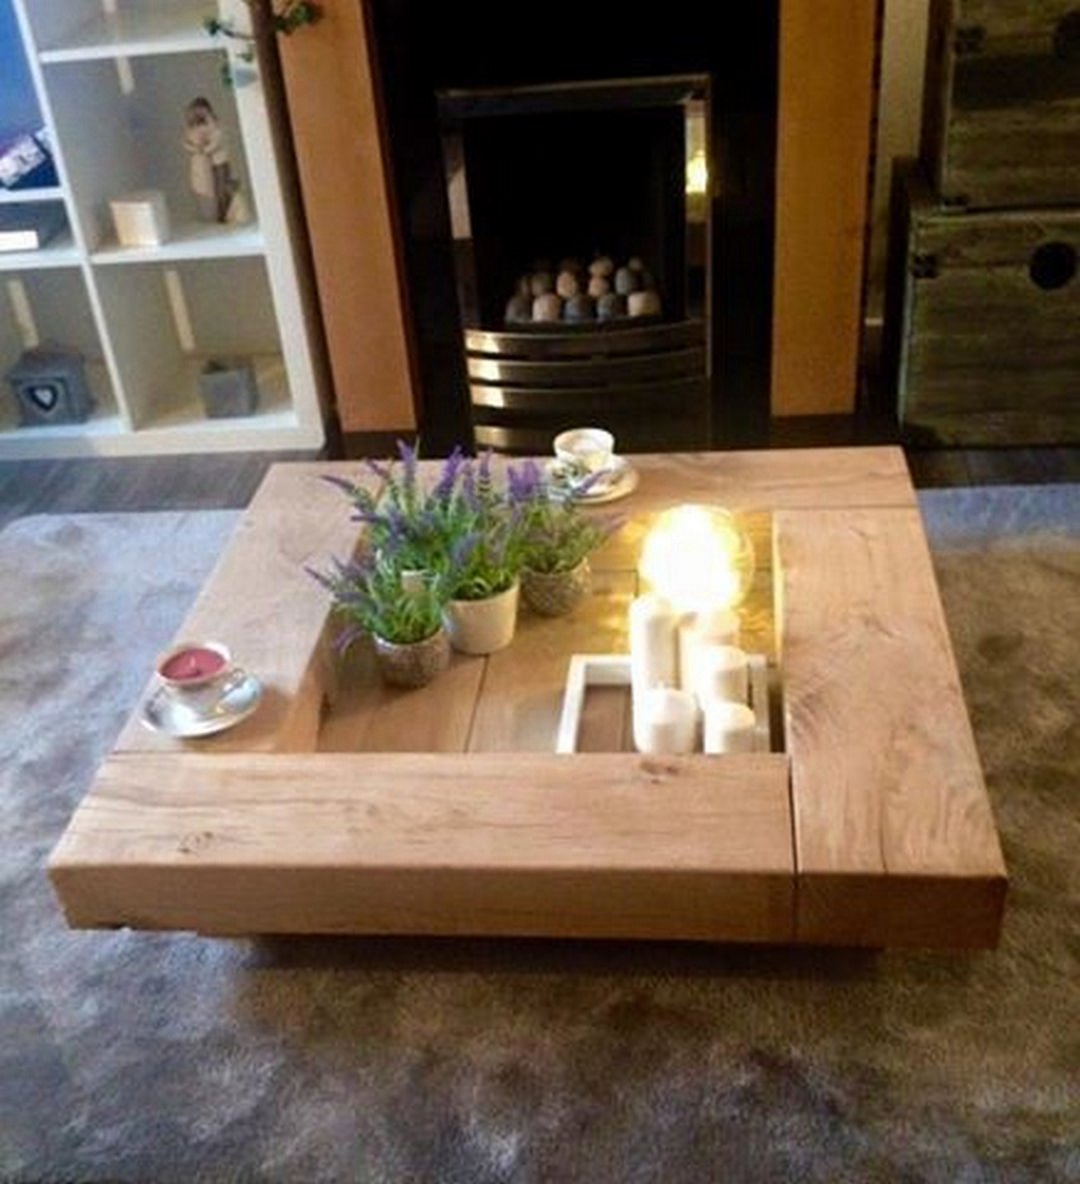 84 Wonderful Coffee Table Design Ideas  Https://www.futuristarchitecture.com/14162 Coffee Tables.html